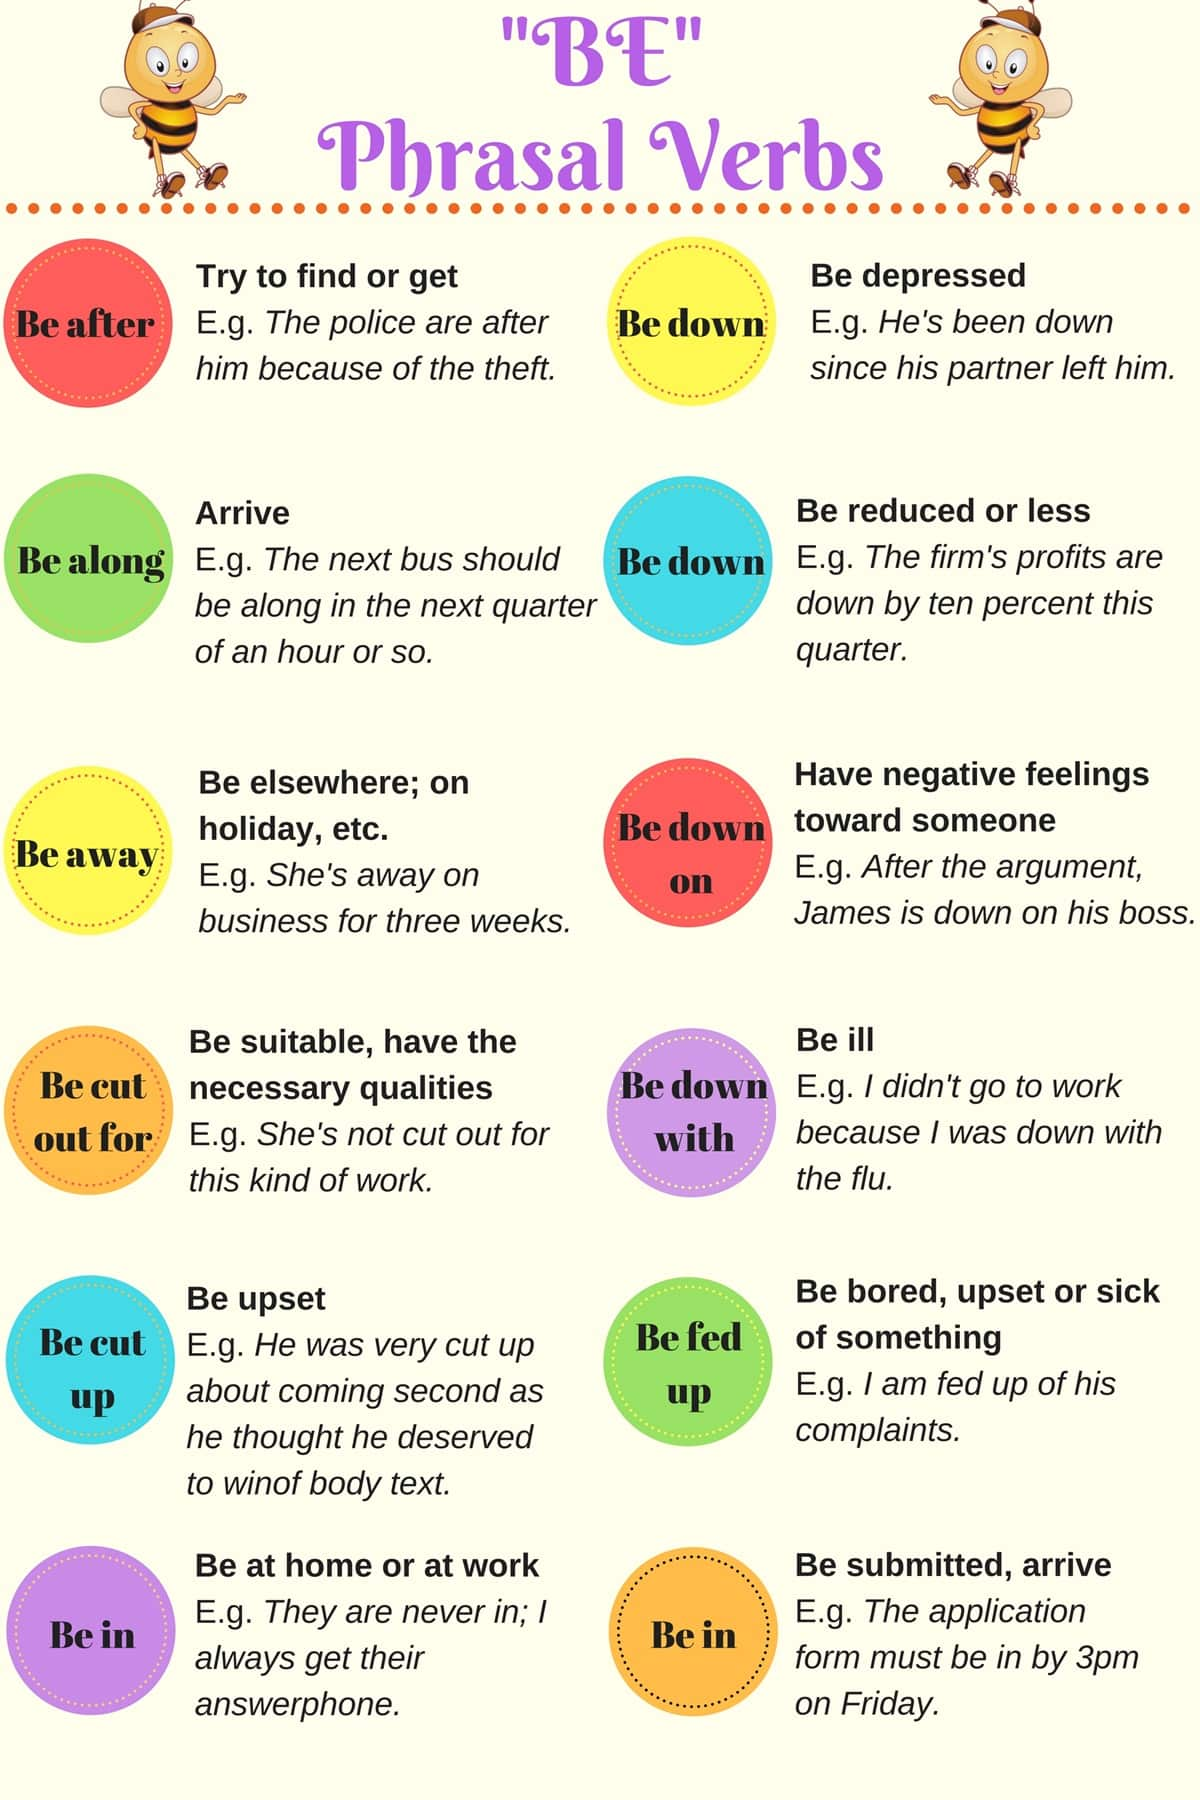 100+ of the Most Useful Phrasal Verbs in English (With Meaning & Examples) 2